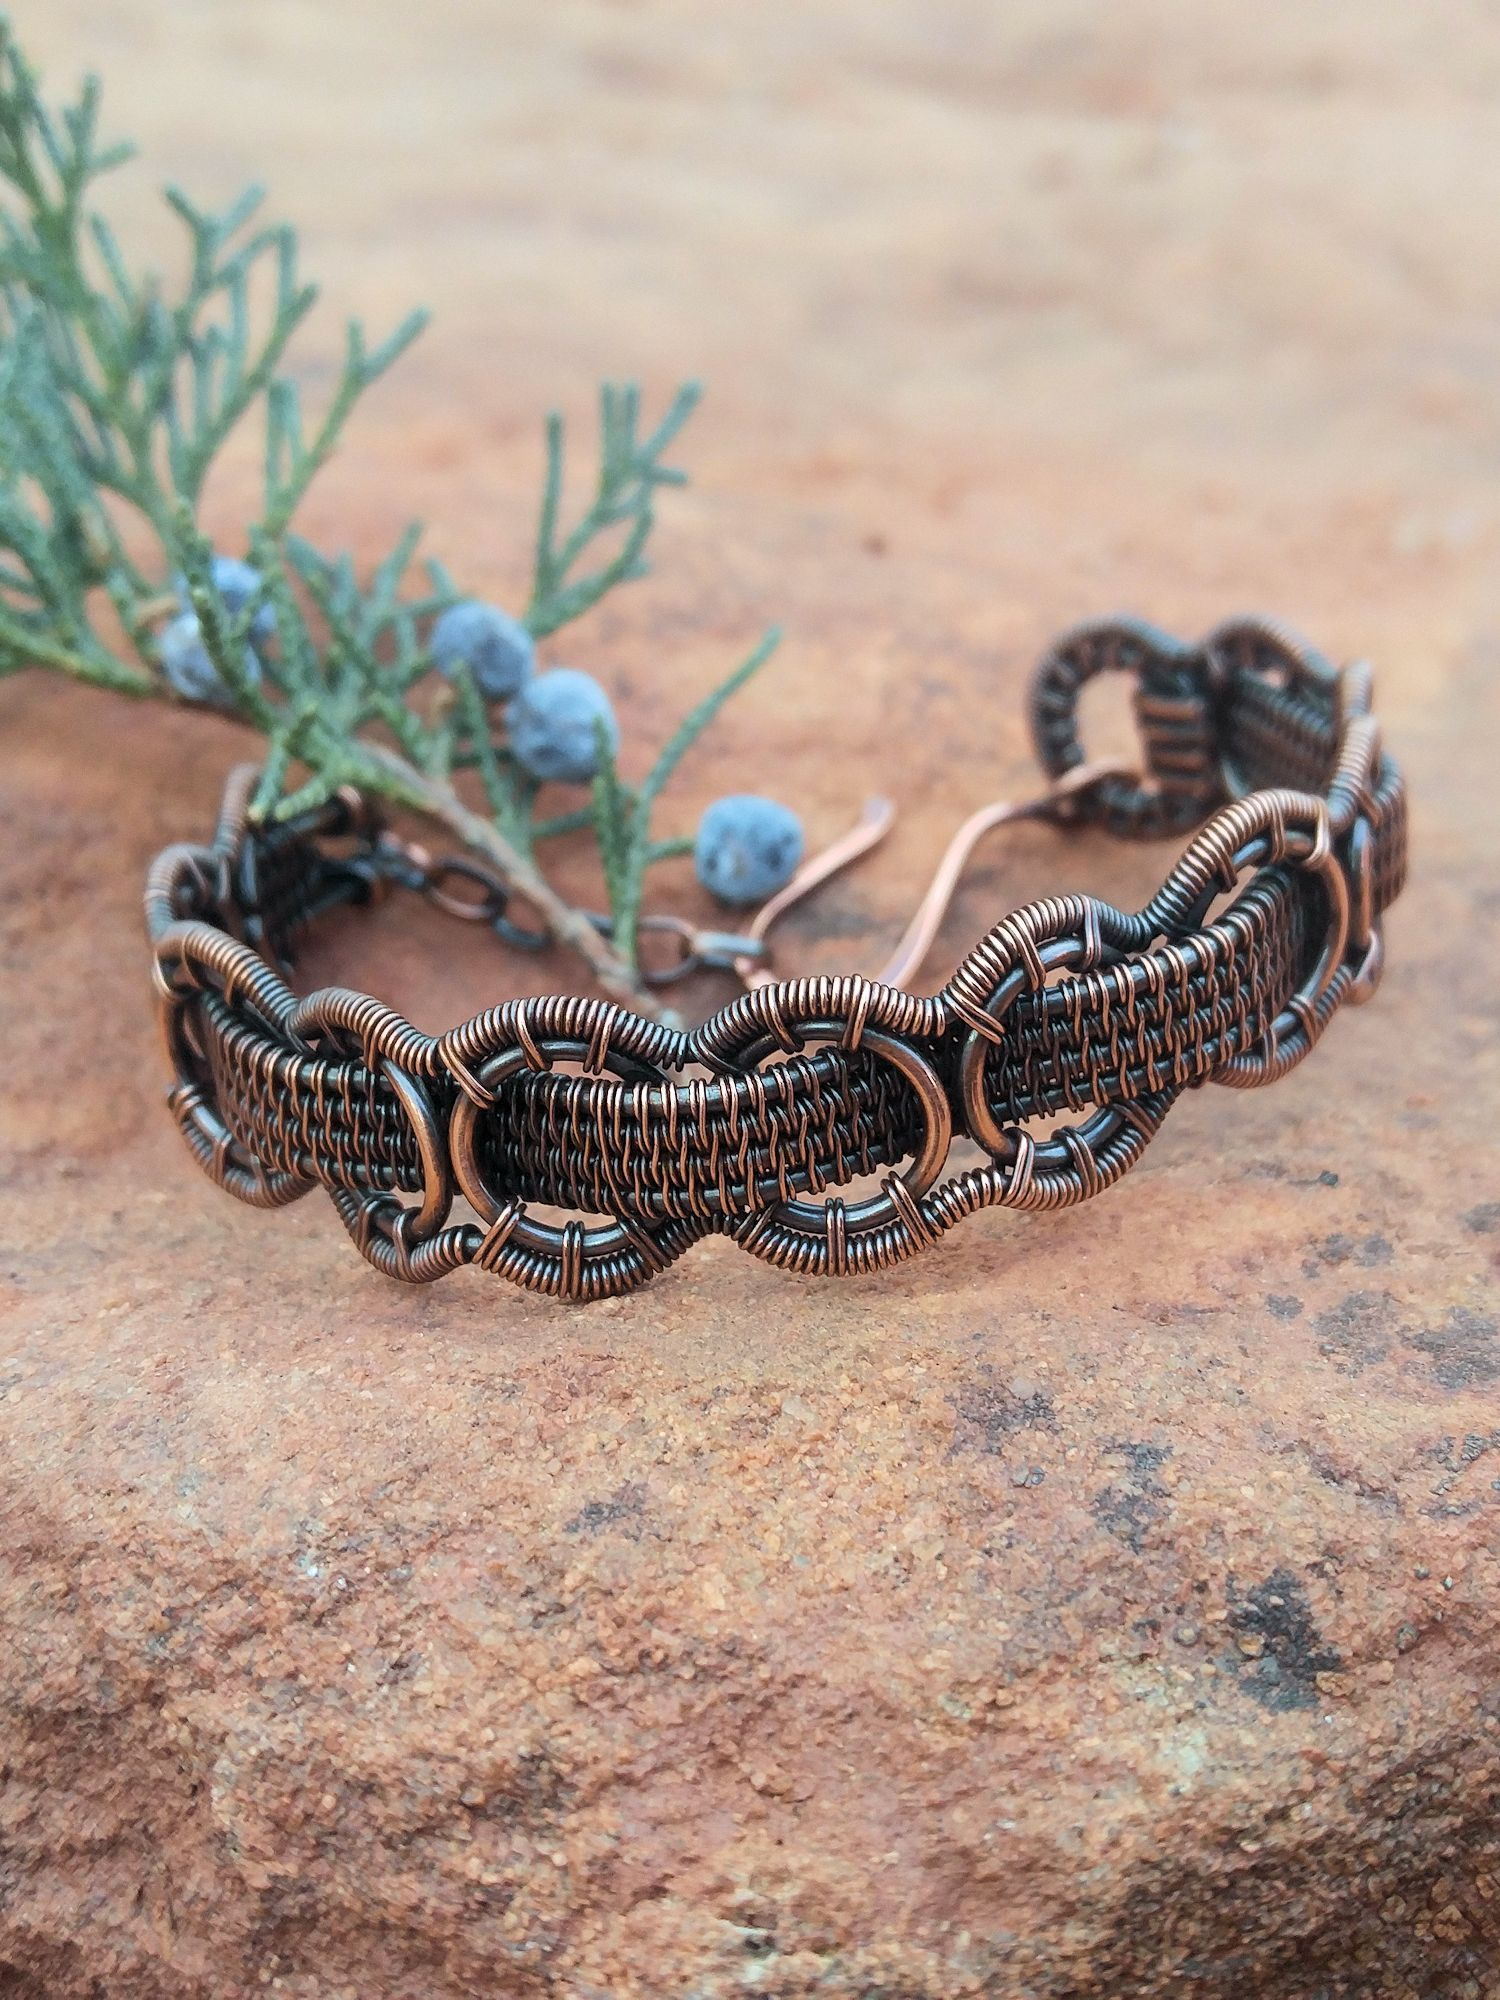 The Interlace Bracelet - Design by Sarah Thompson, Fabricated by Wendi Reamy